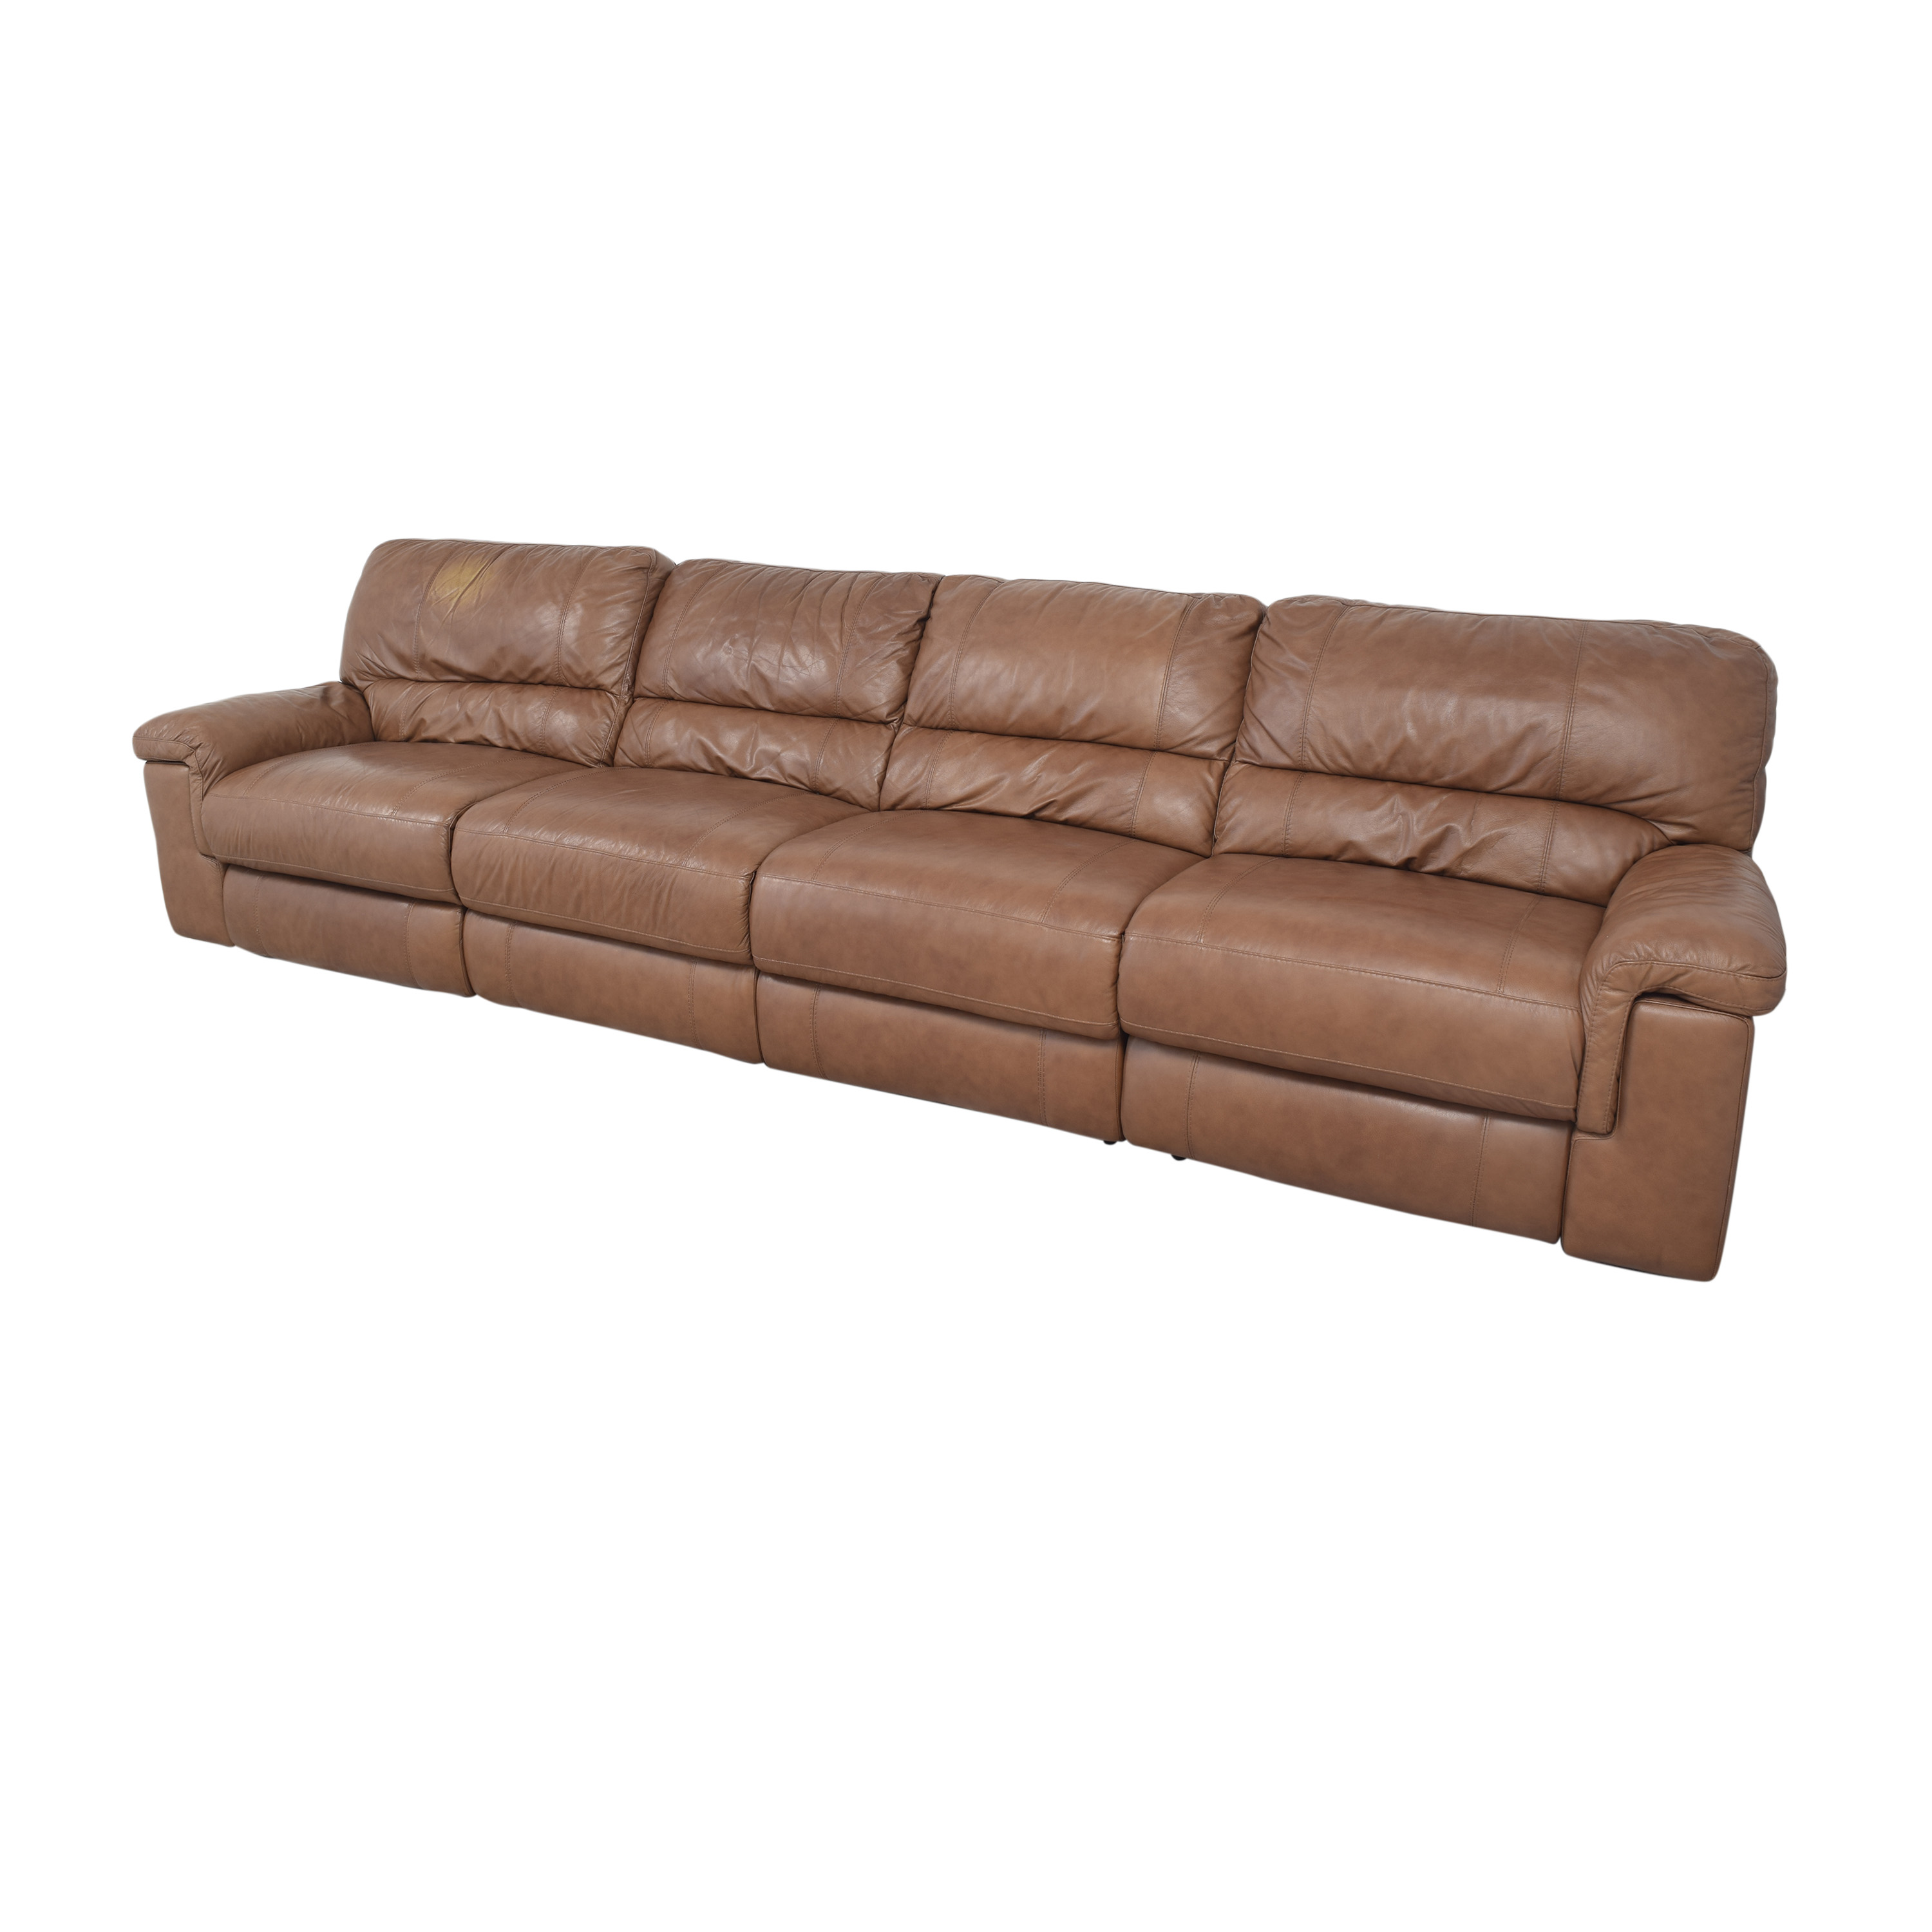 buy Thomasville Thomasville Power Reclining Sectional Sofa online